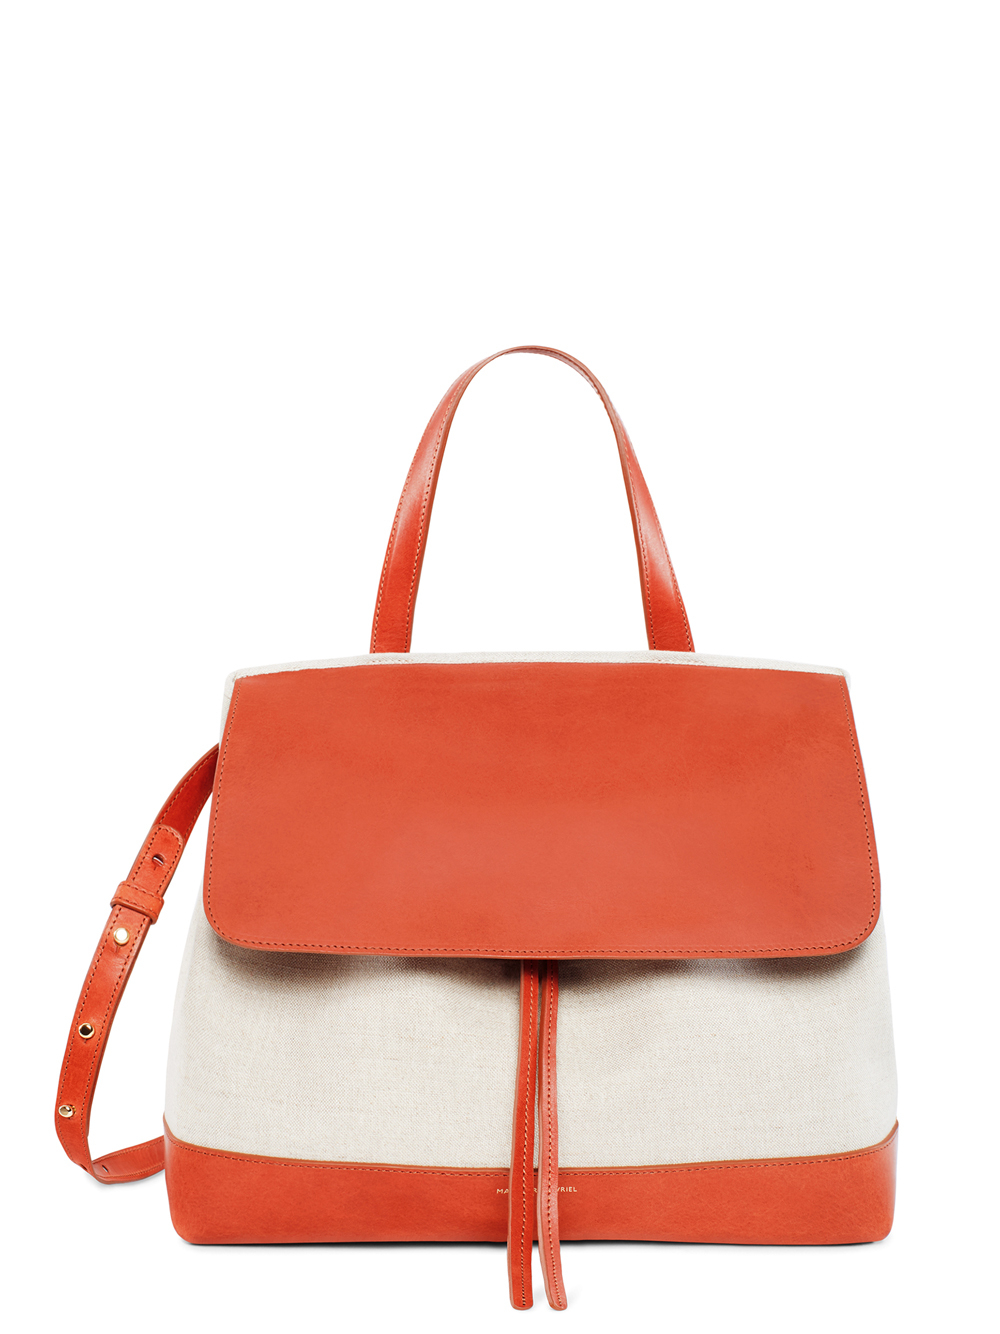 bc3380d99a7b Lyst - Mansur Gavriel Lady Canvas And Leather Tote Bag in Orange